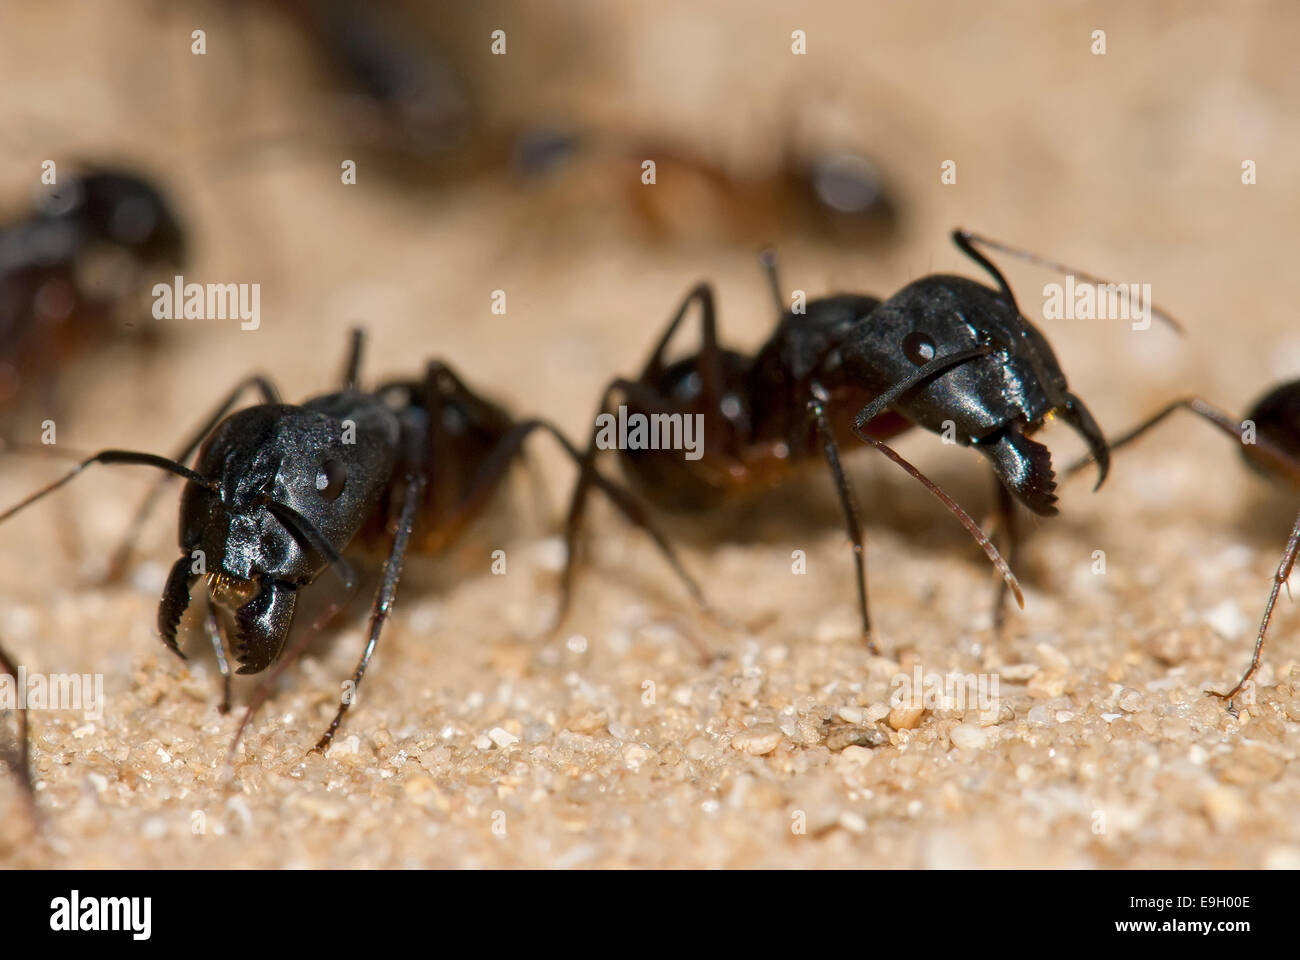 Ants ready to protect the colony - Stock Image